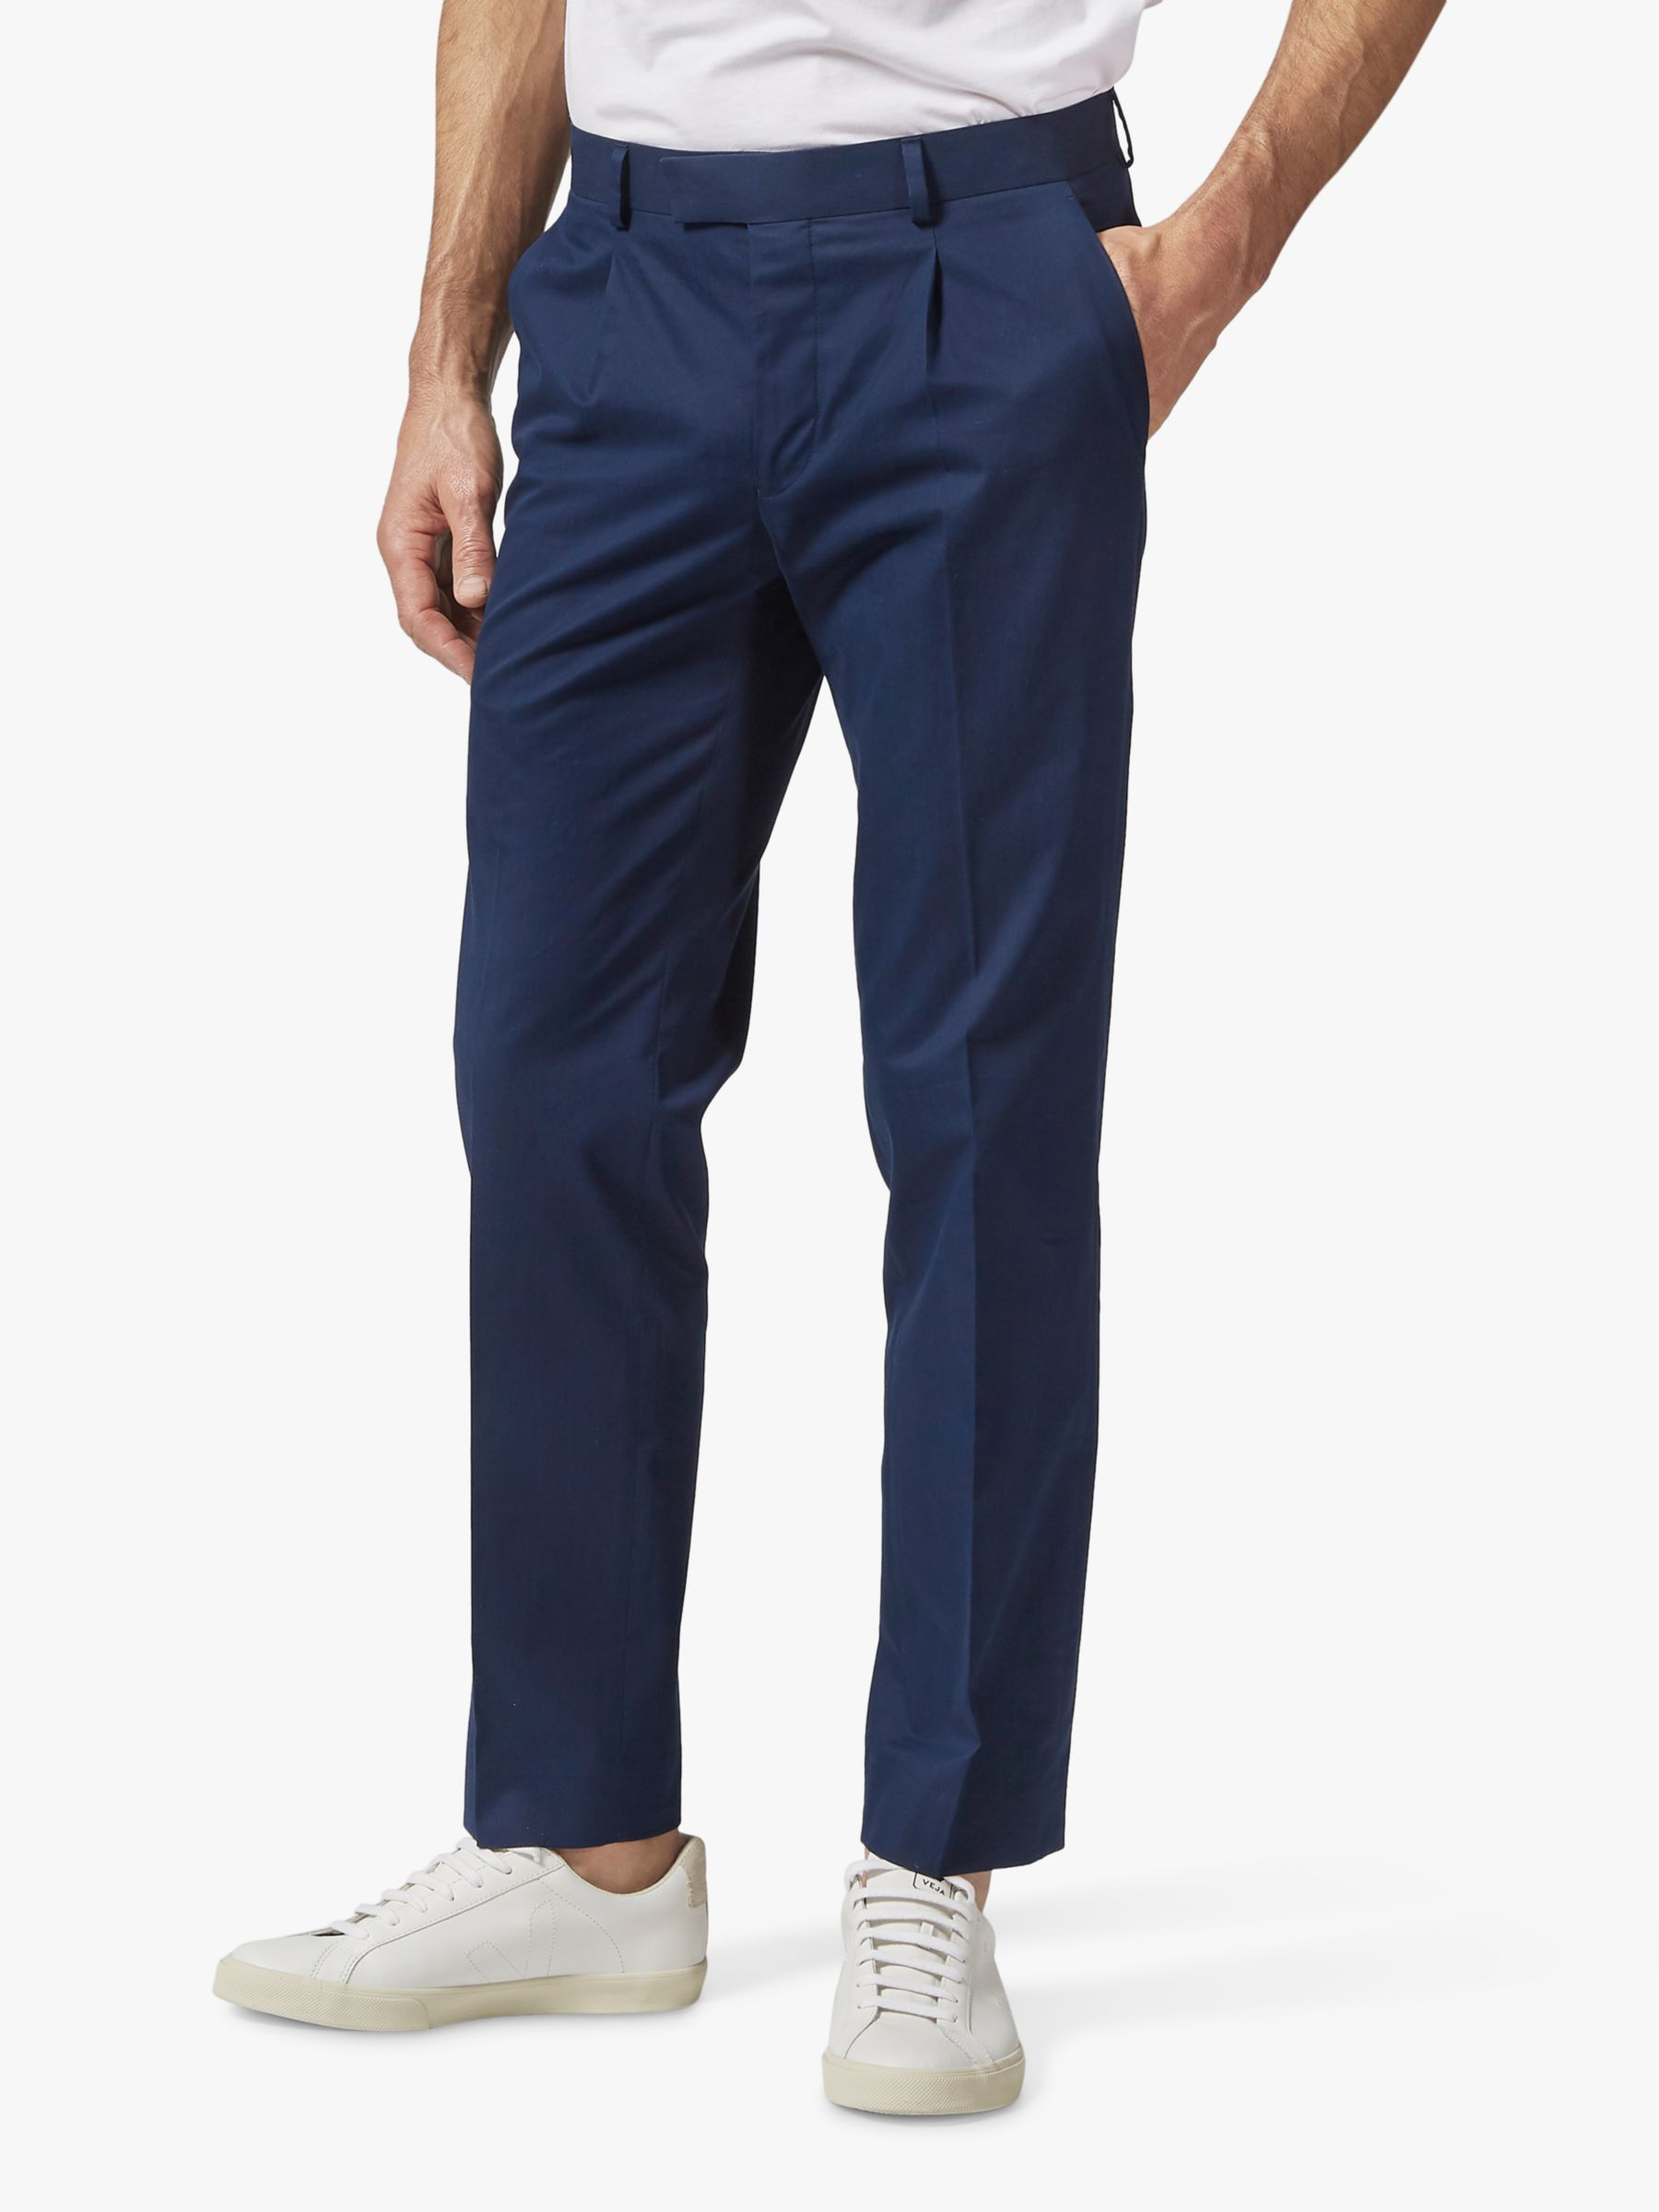 Richard James Mayfair Richard James Mayfair Italian Cotton Tailored Suit Trousers, Navy